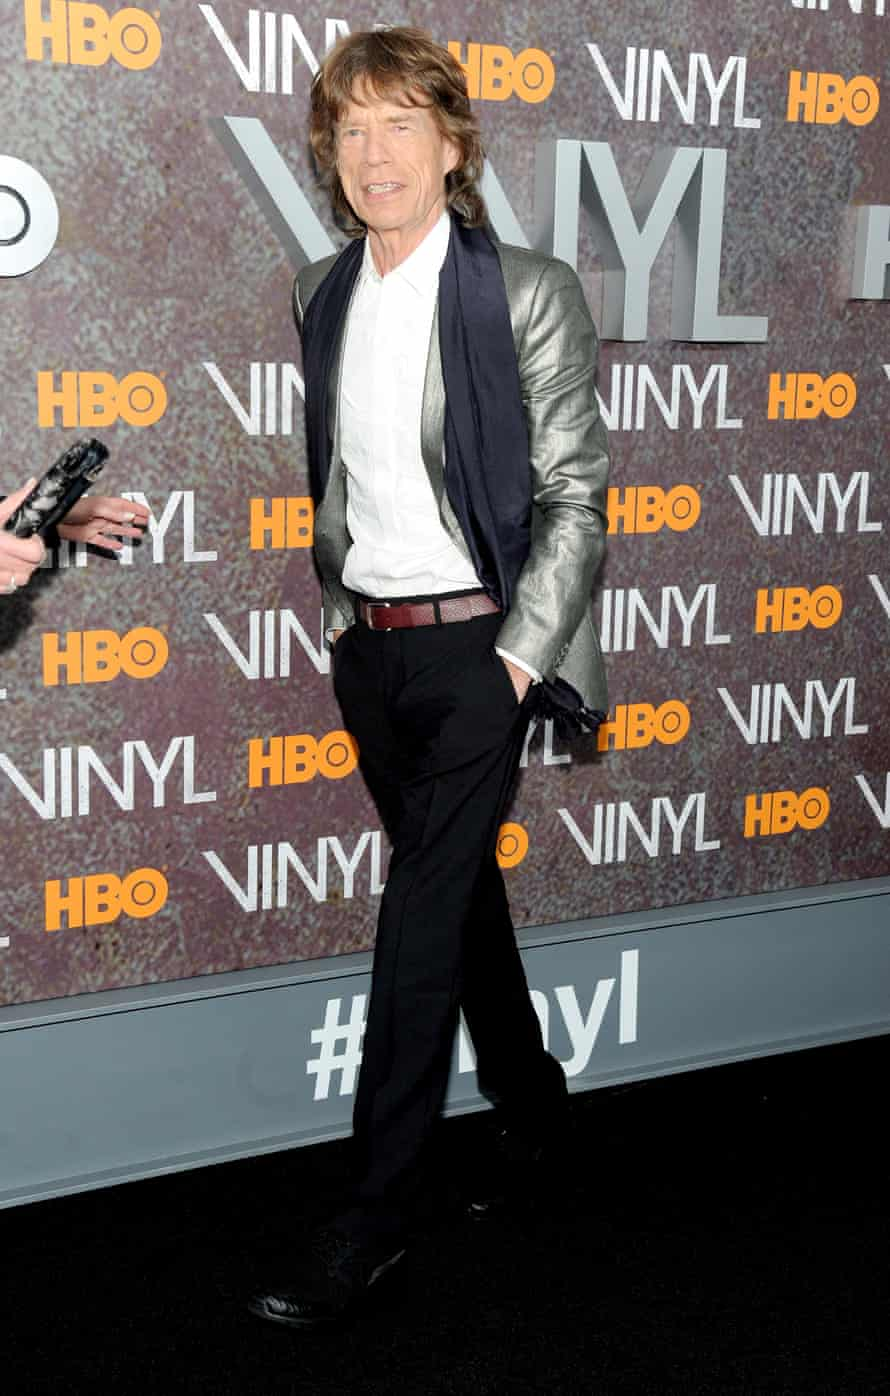 Mick Jagger at the New York premiere of Vinyl.